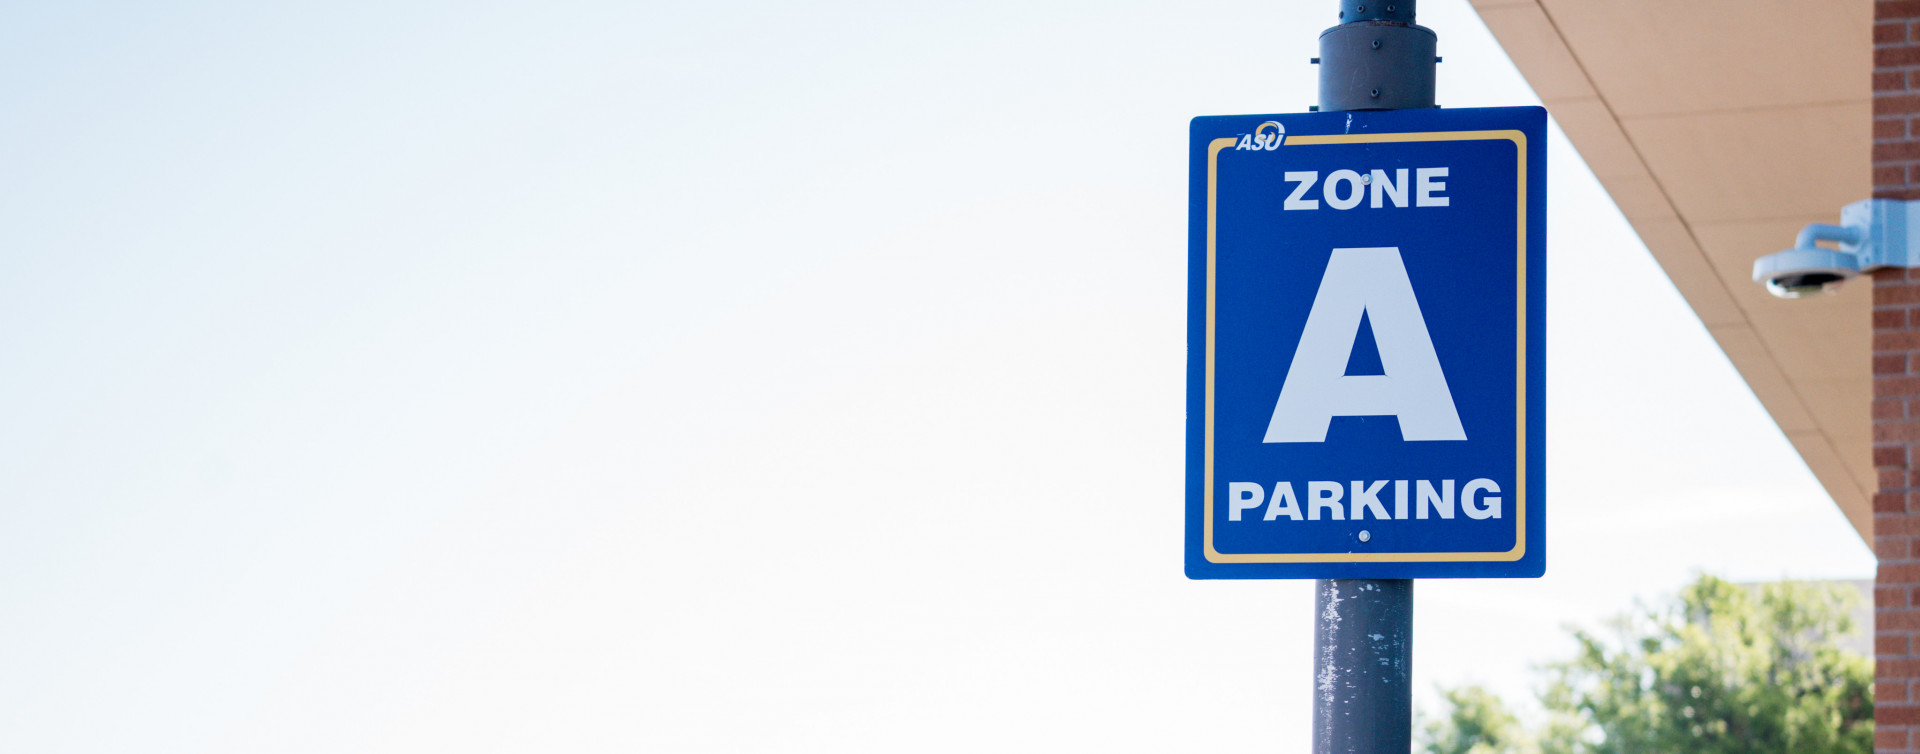 Zone A Parking sign